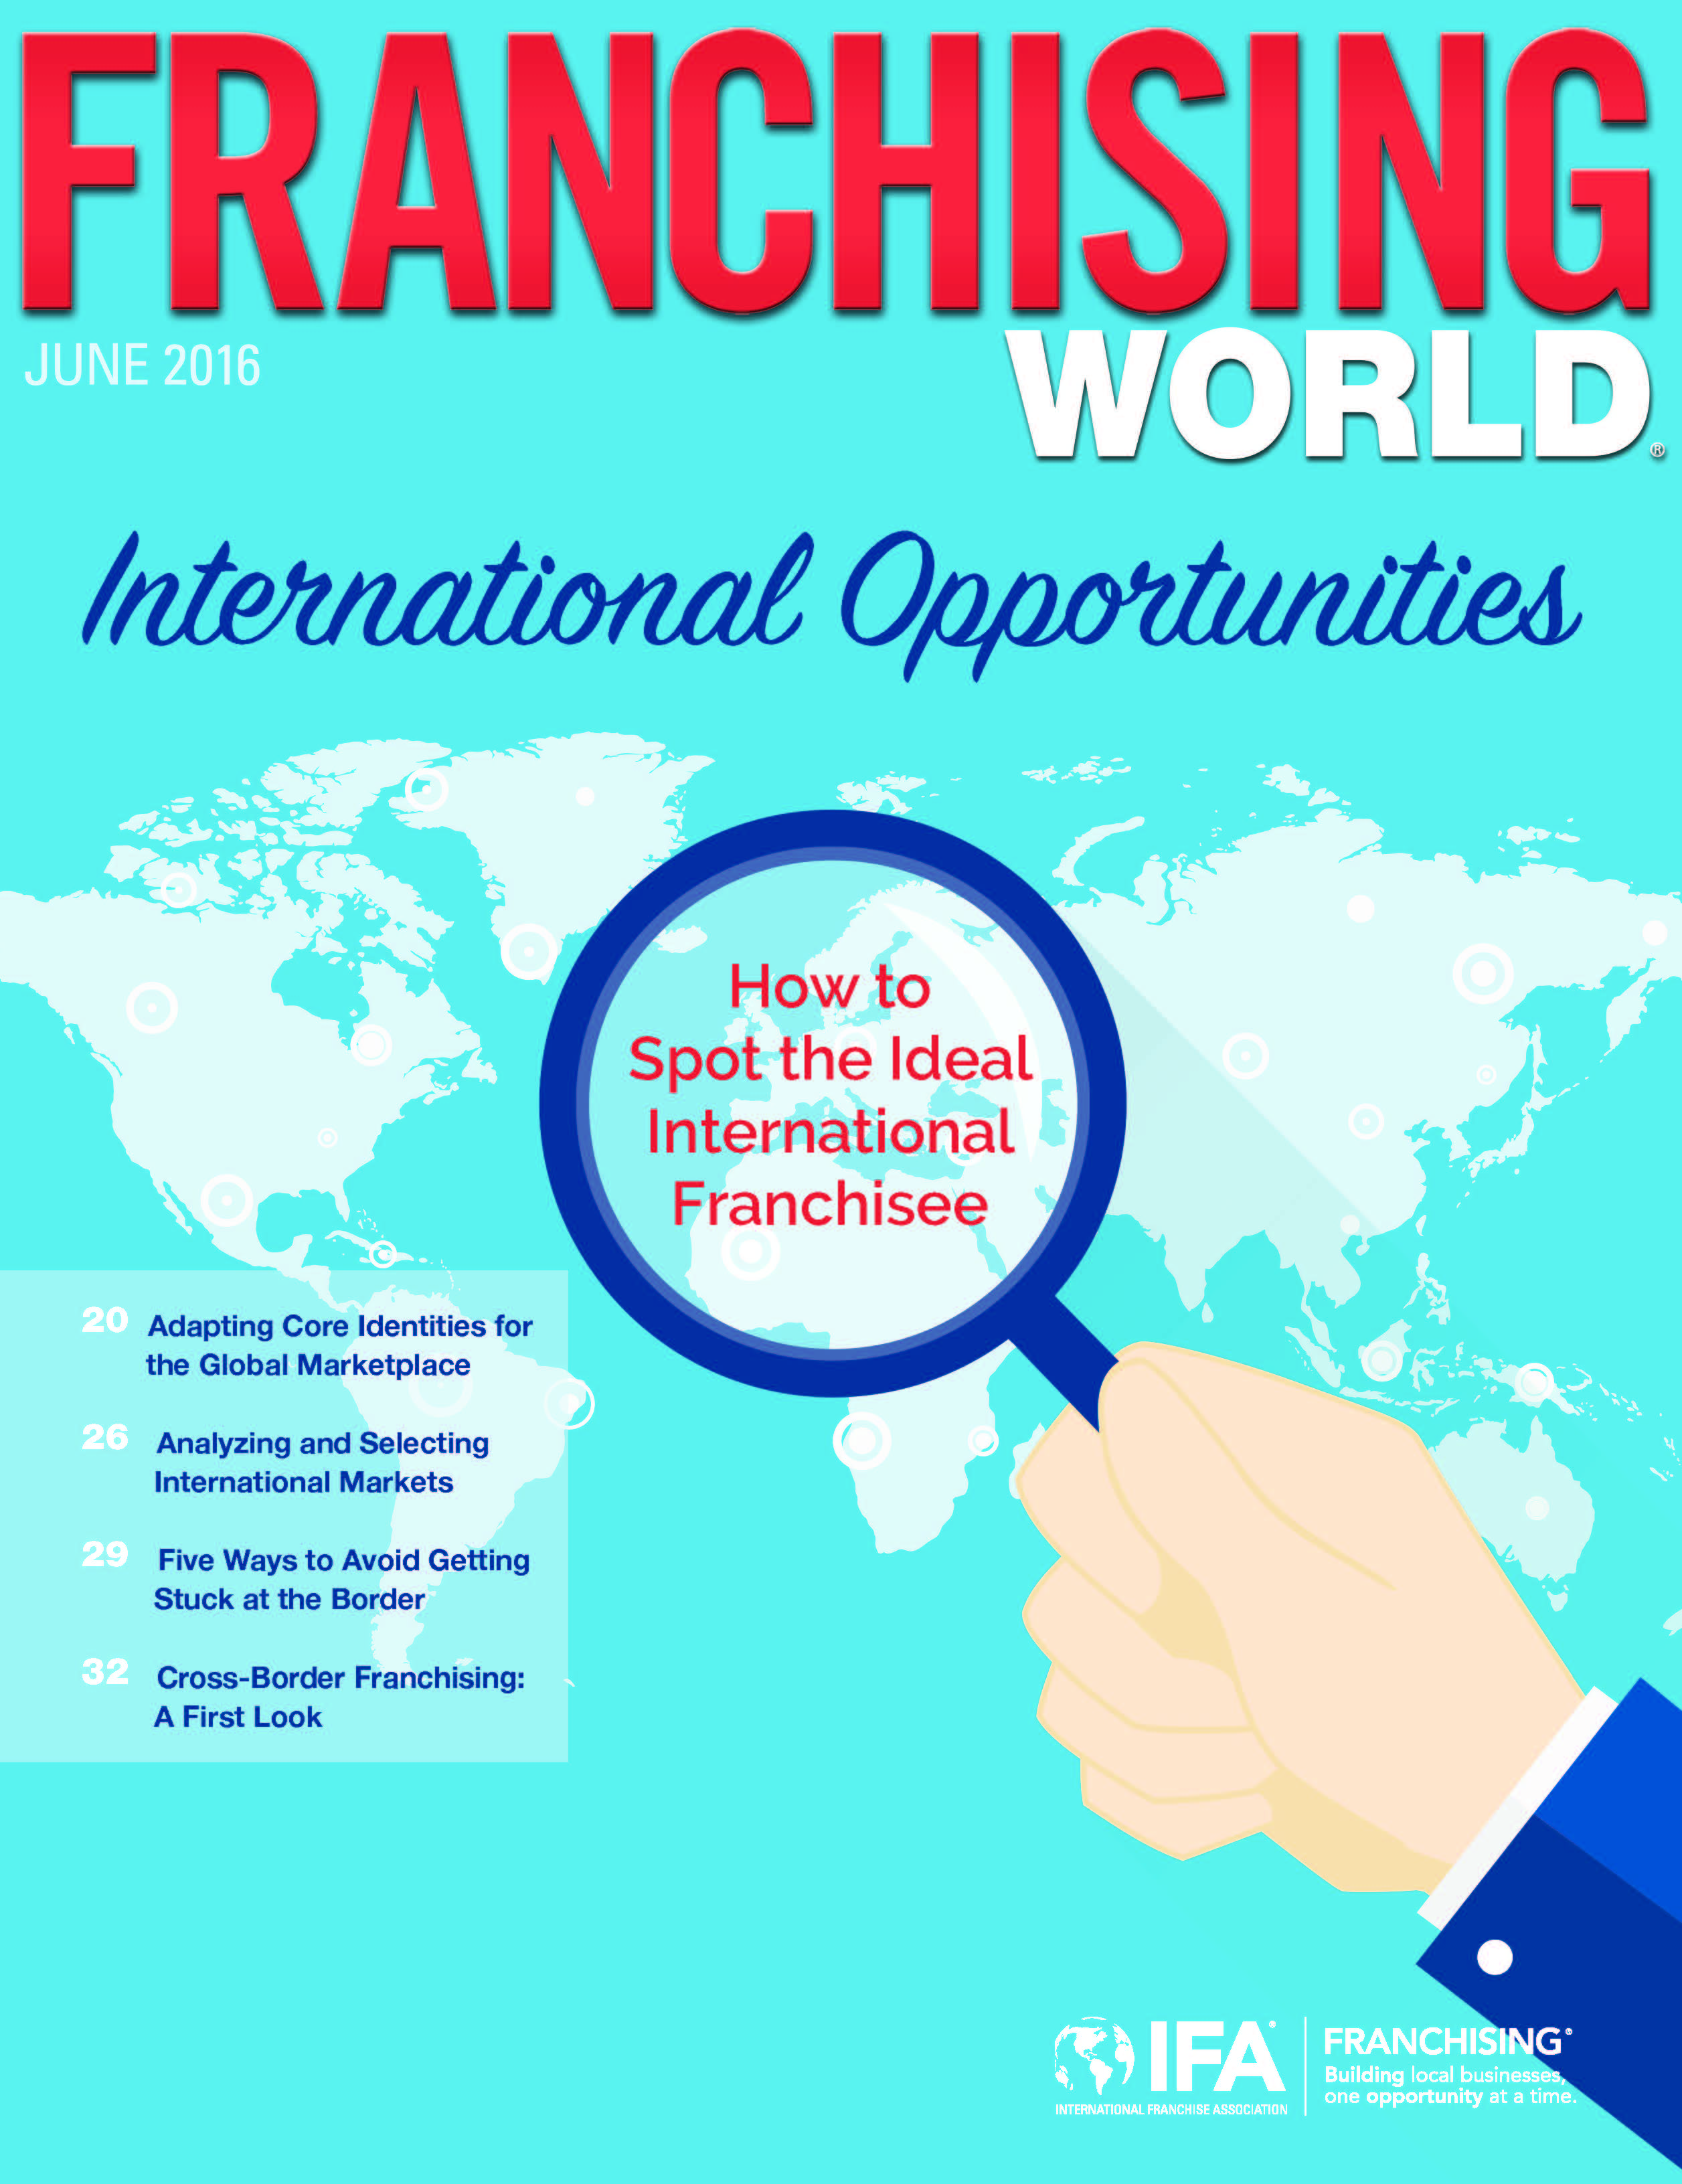 Franchising World June 2016 Digital Edition